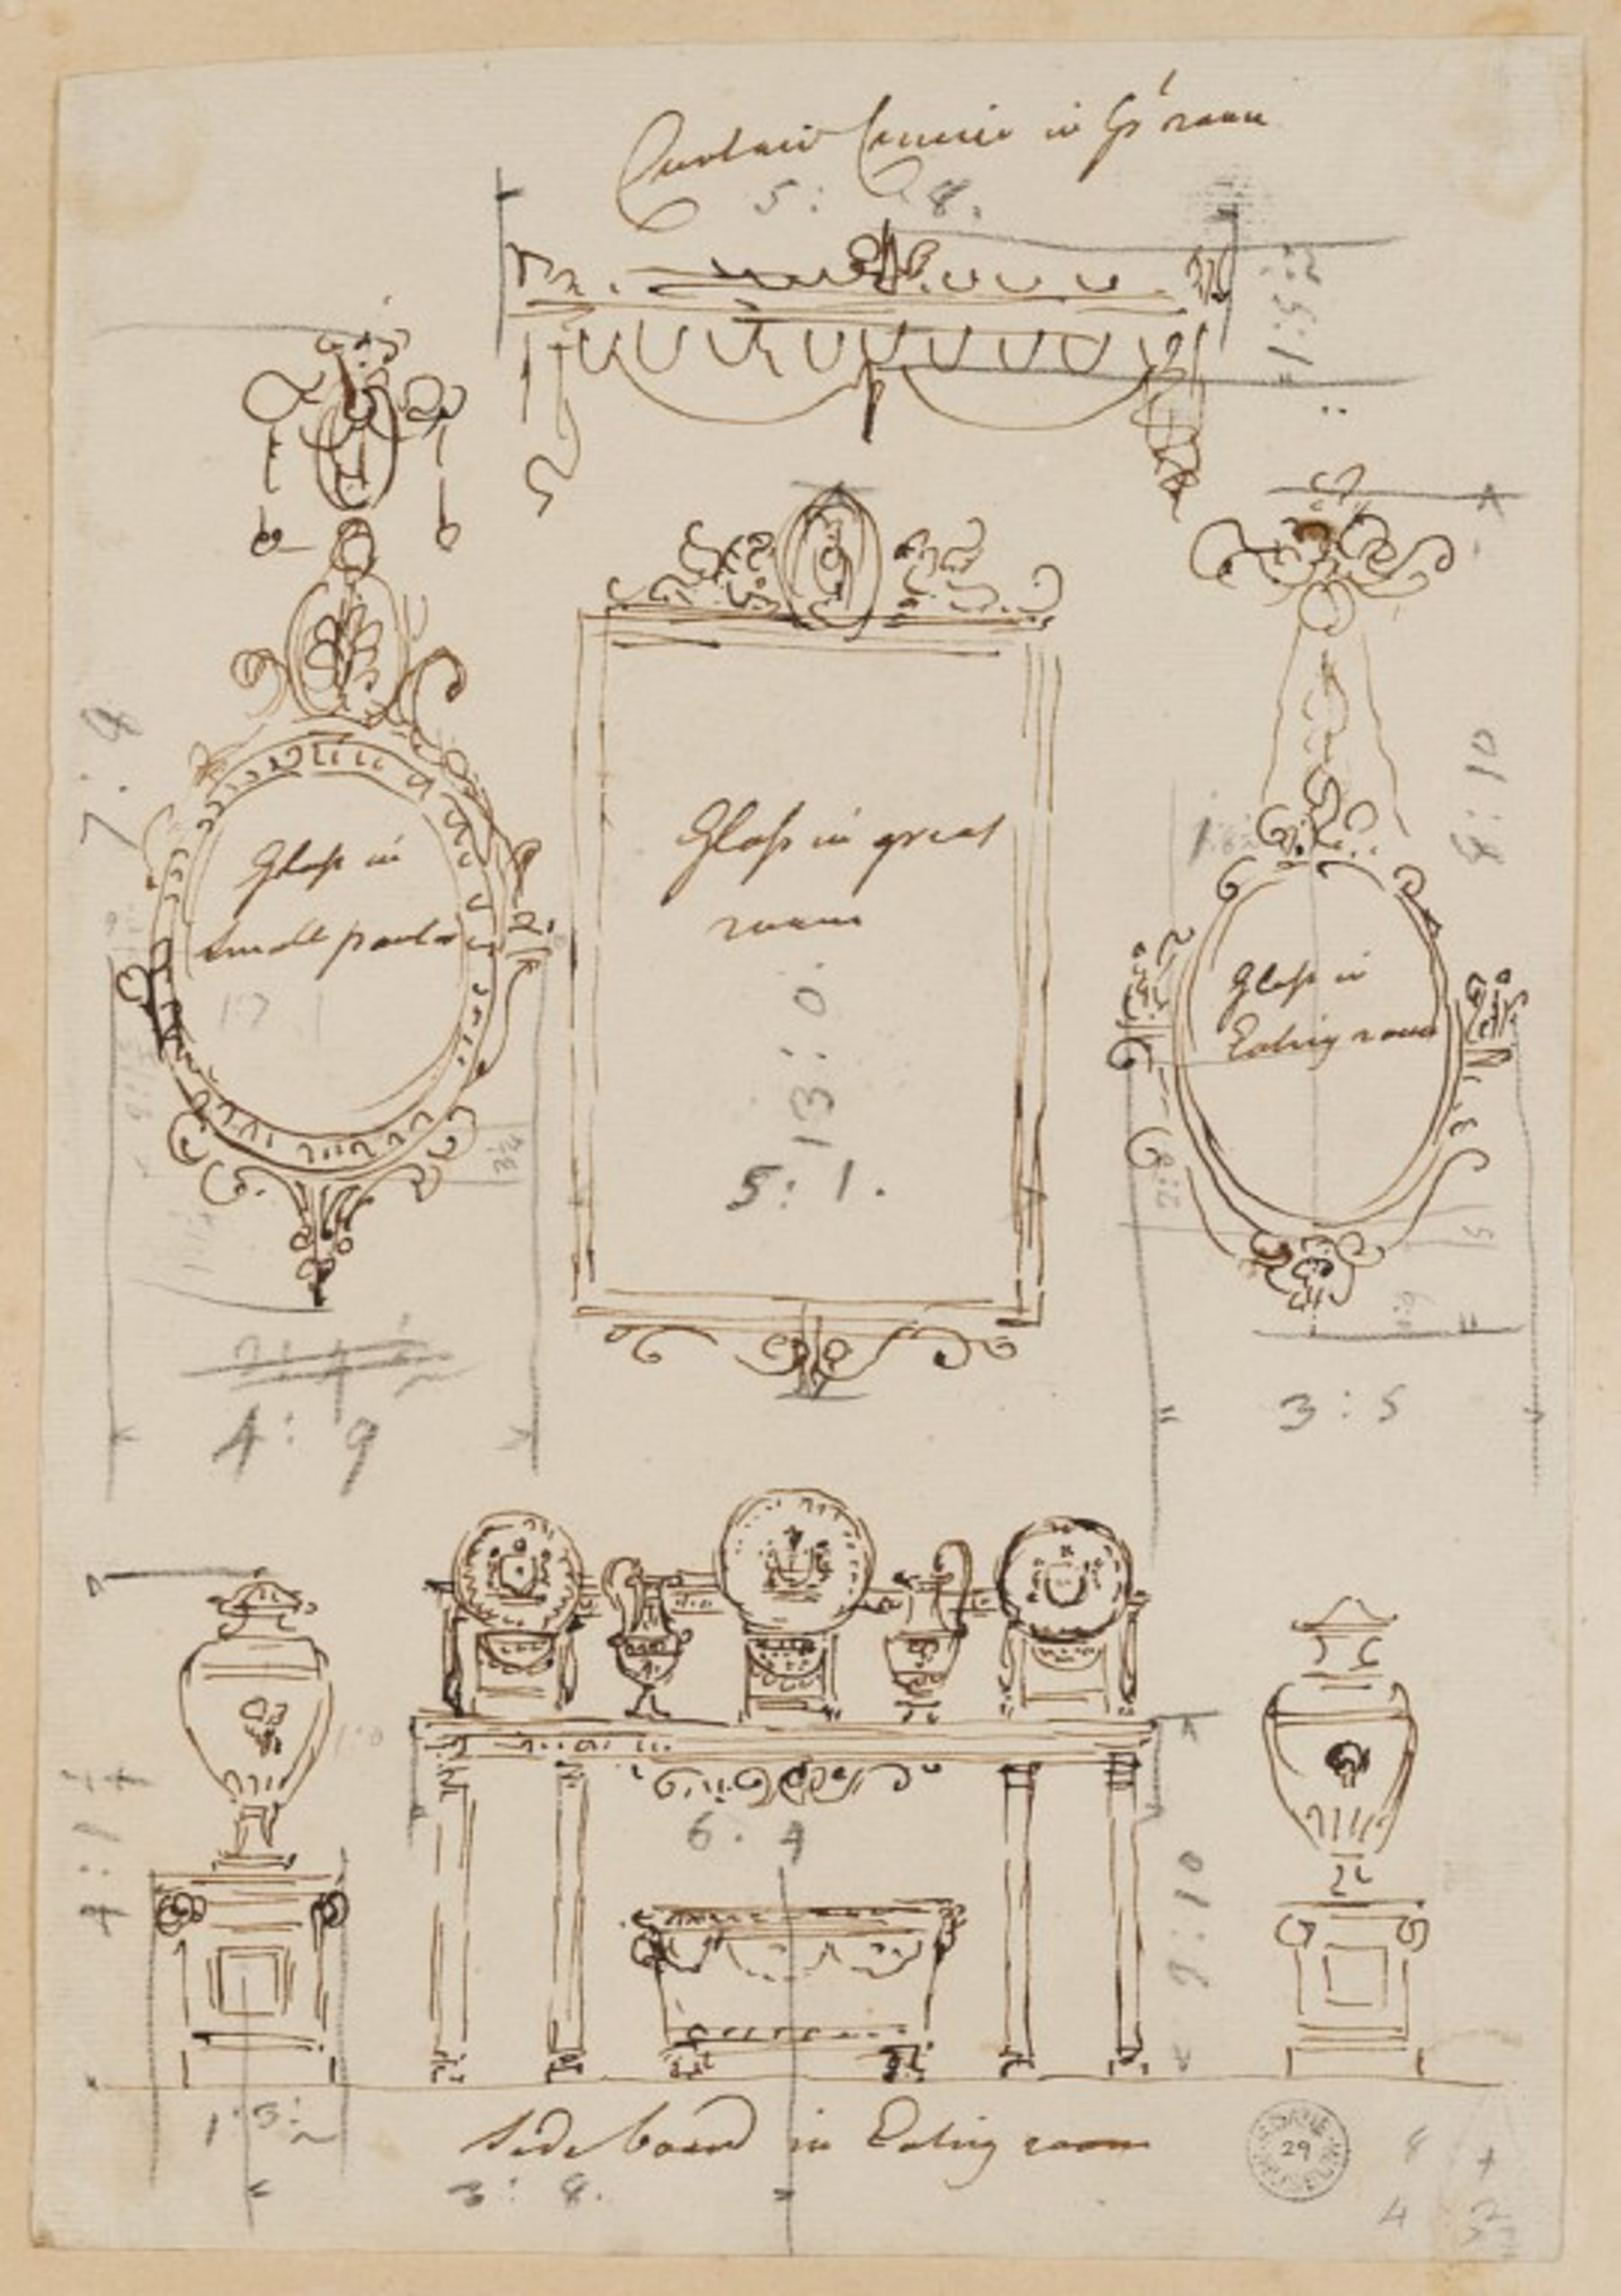 'Rough preliminary drawing made for publication for various items of furniture', including the sideboard